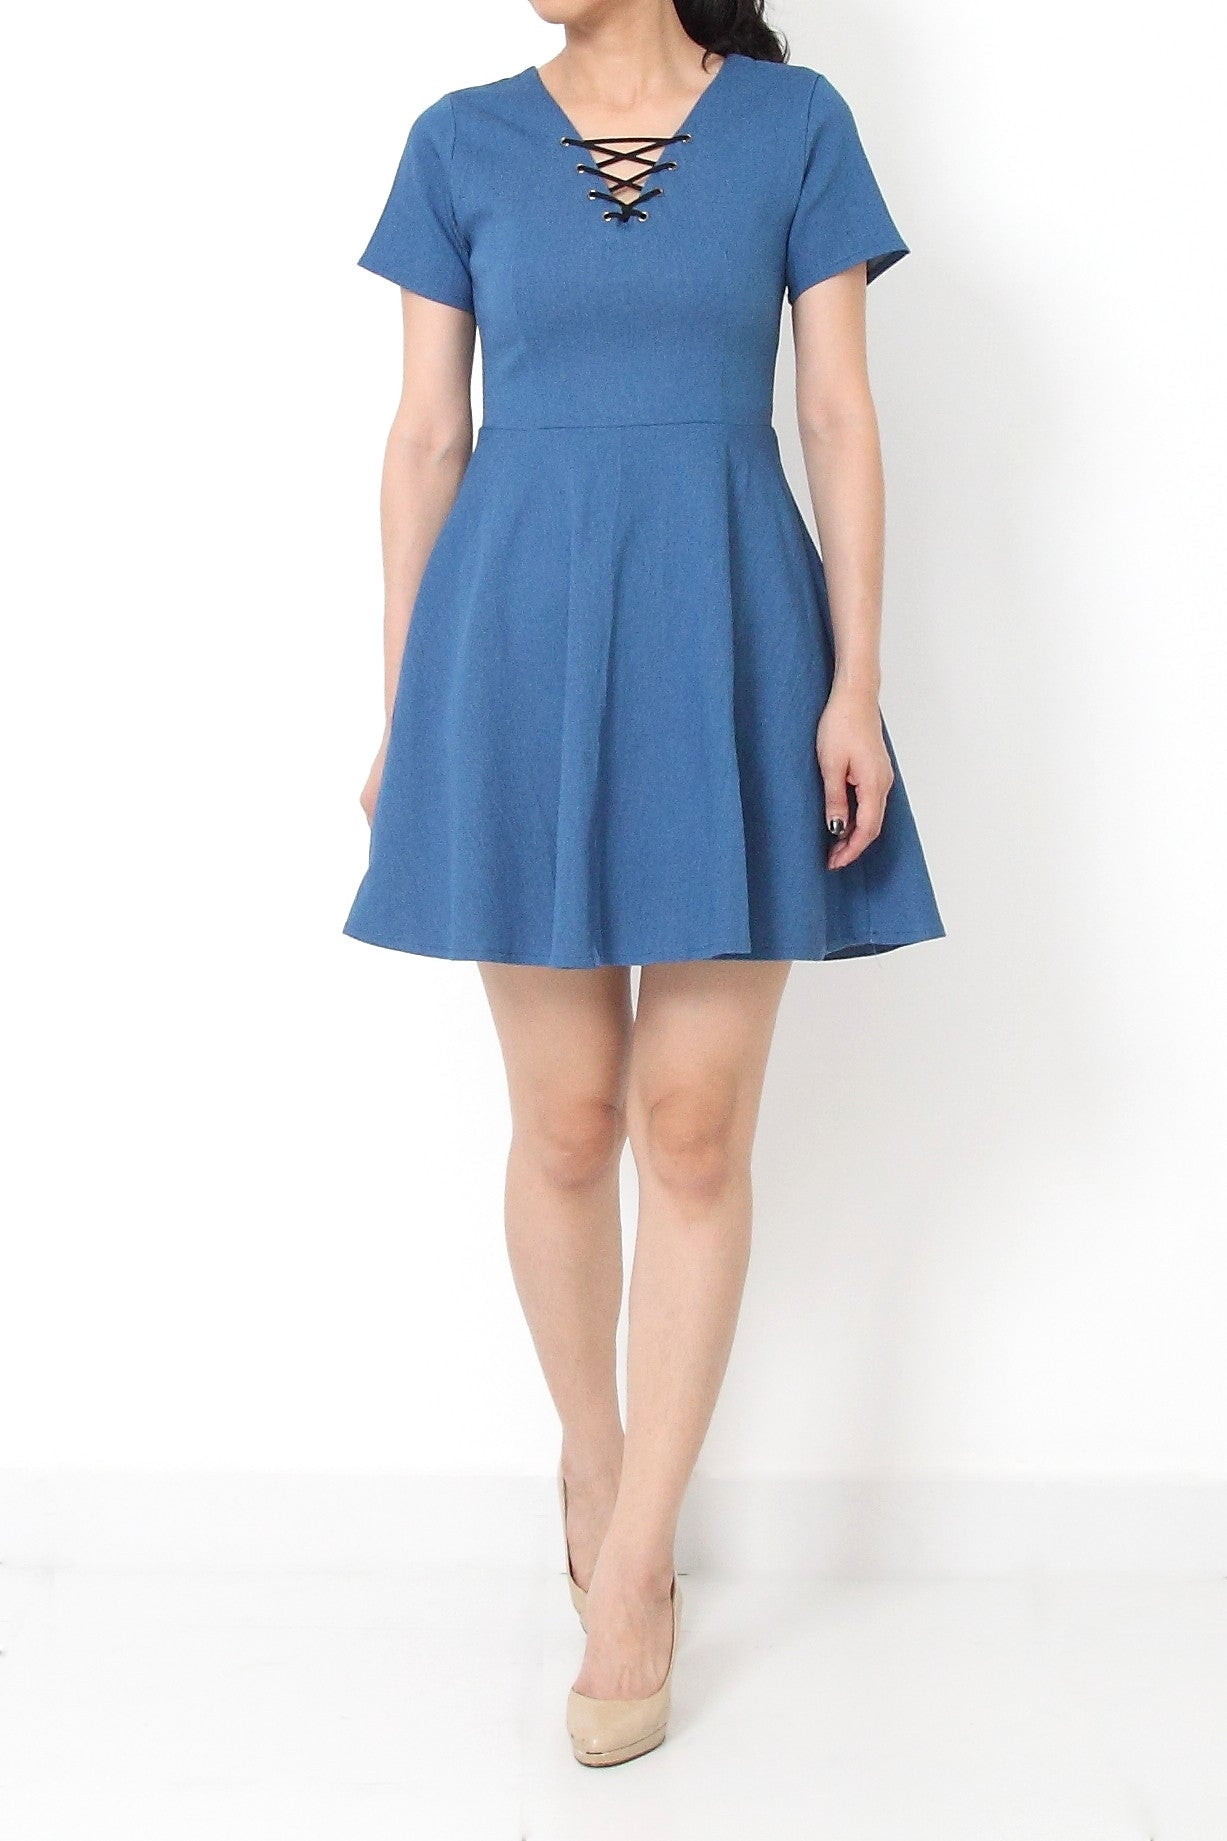 9541df35389 KATE Fit and Flare Denim Dress - S M – Felice Fabric